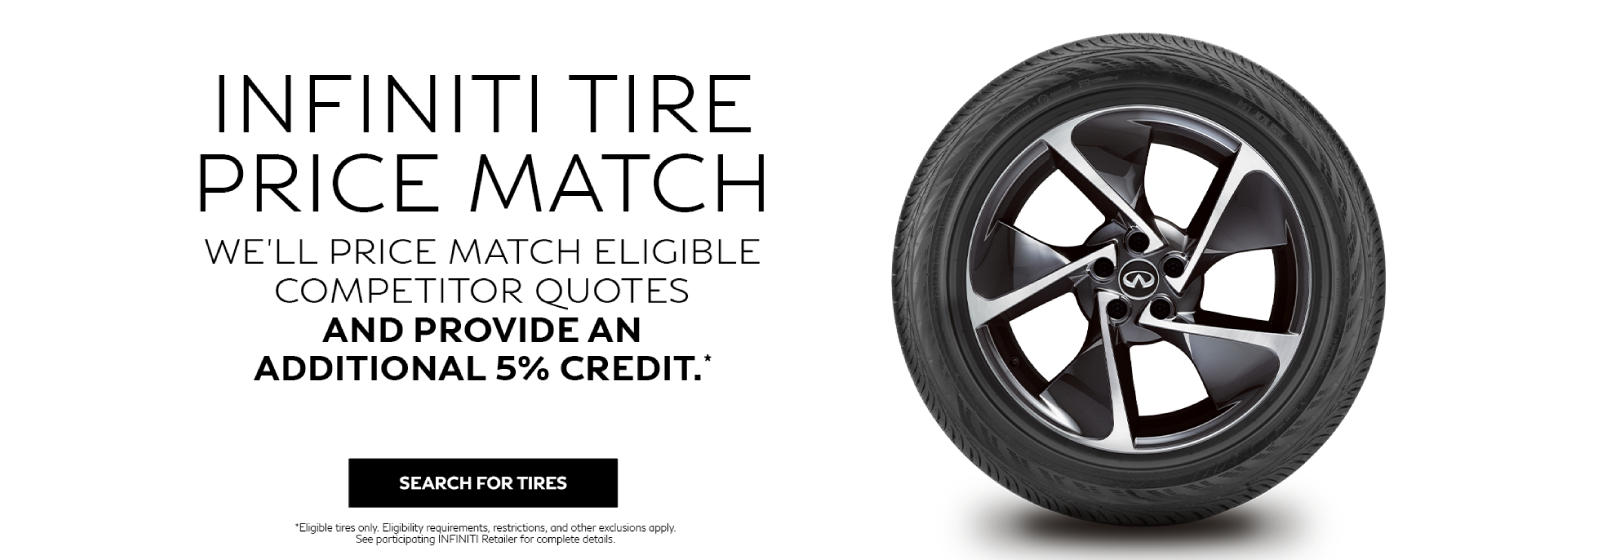 INFINITI Tire Price Match. We'll price match eligible competitor quotes and privde an additional 5% credit. See retailer for details.